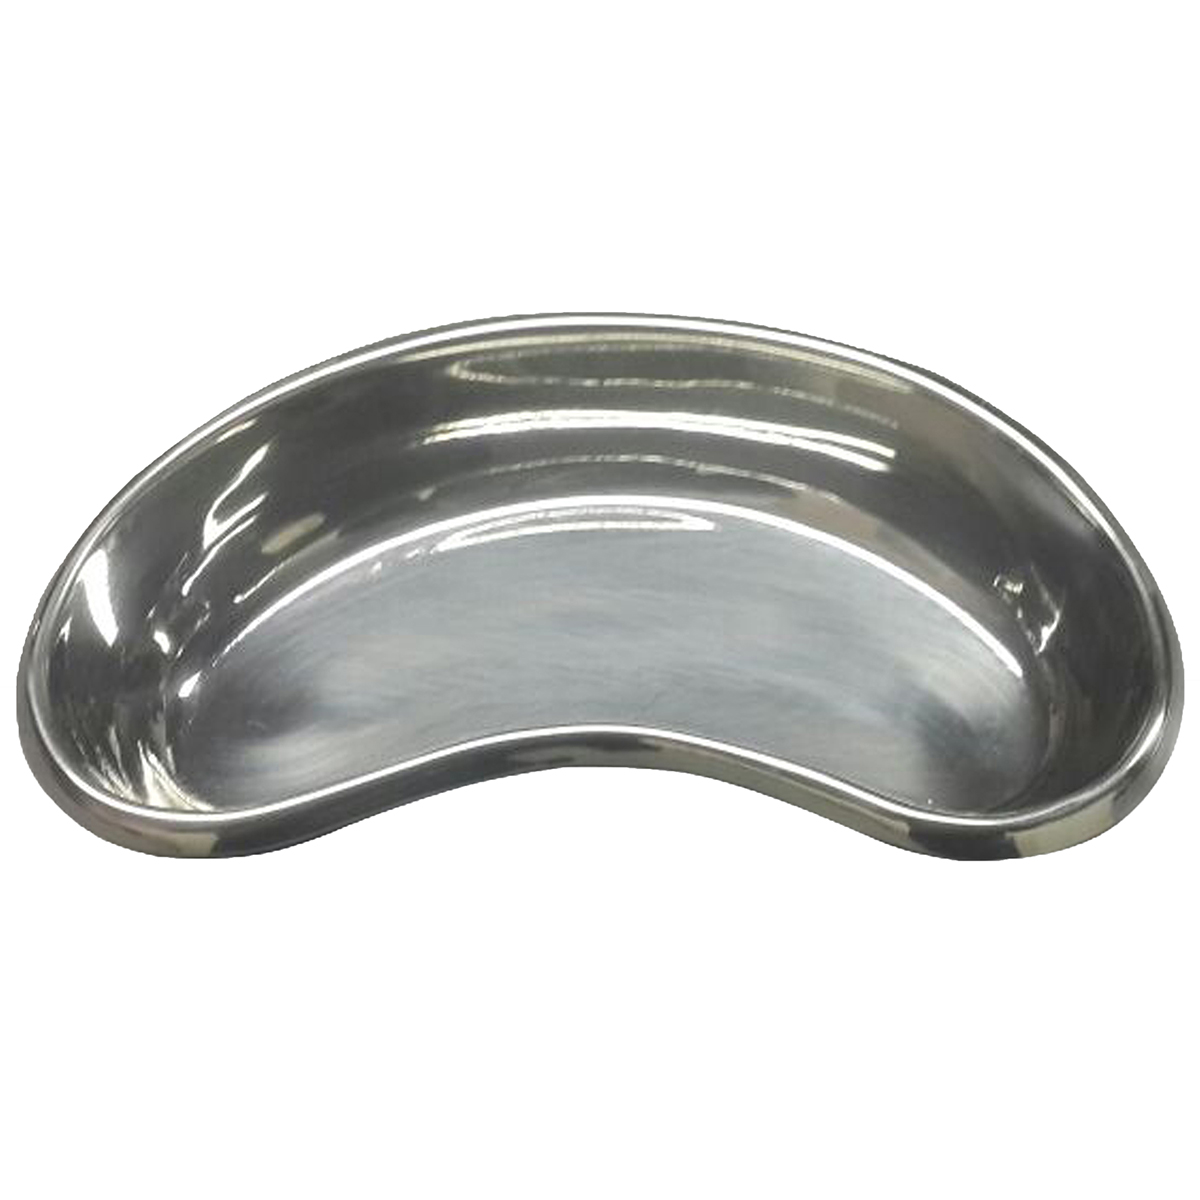 15cm Stainless Steel Kidney Bowl